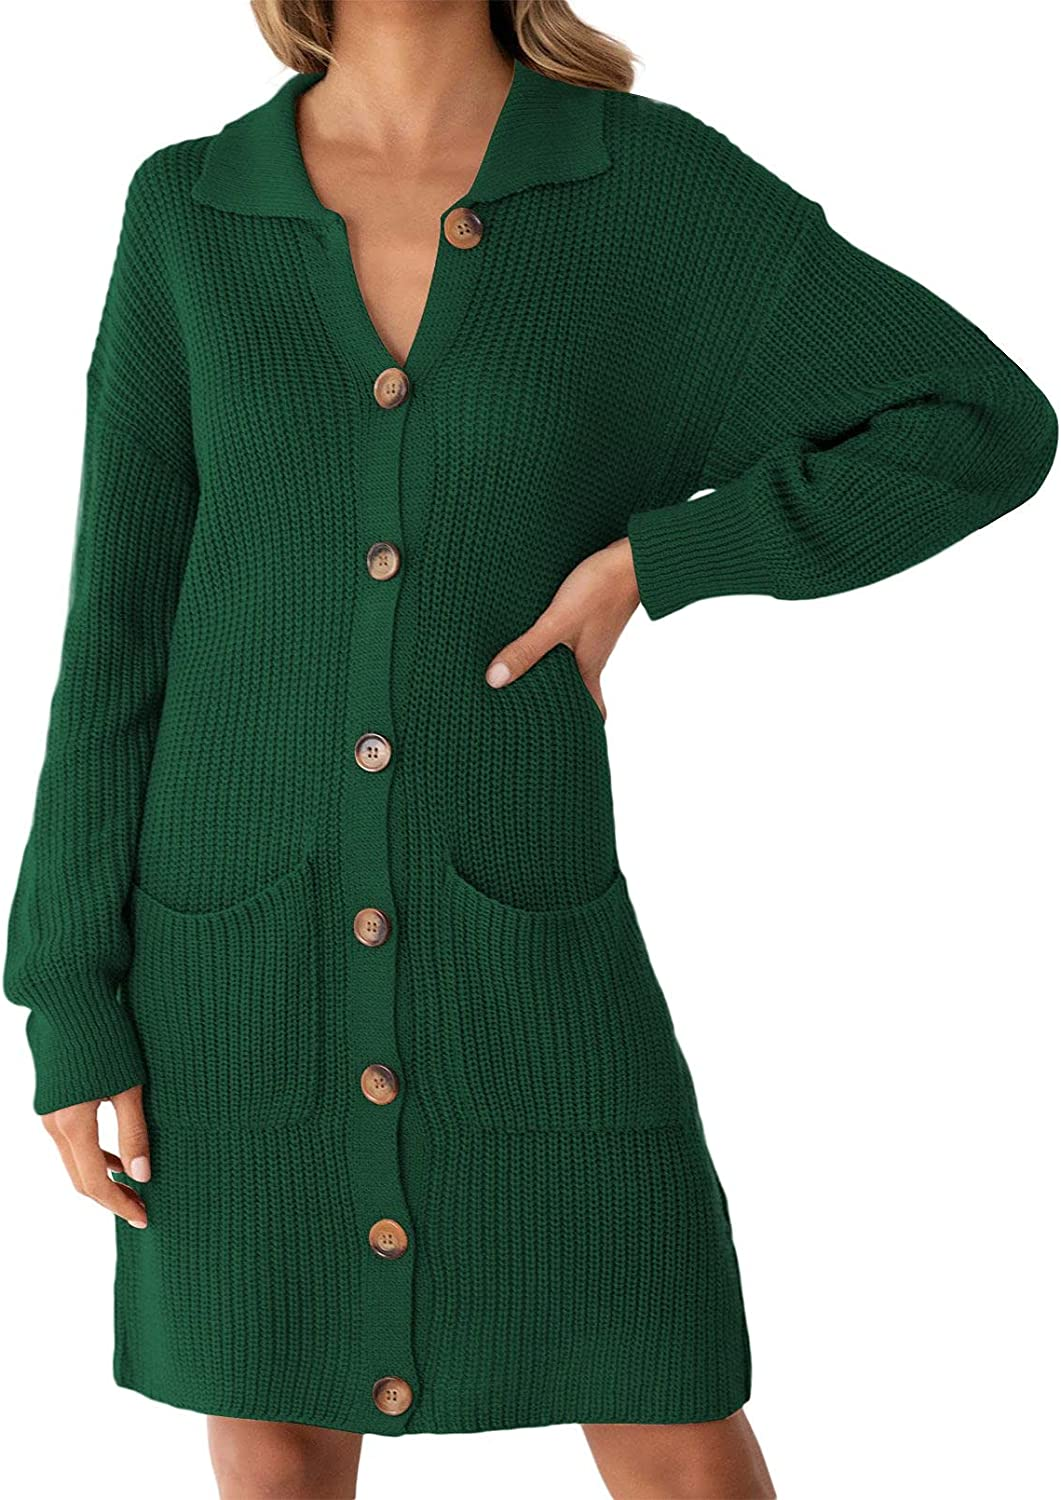 Cutiefox Women's Long Sleeve Button Down Open Front Knit Cardigan Sweater Dress with Pockets